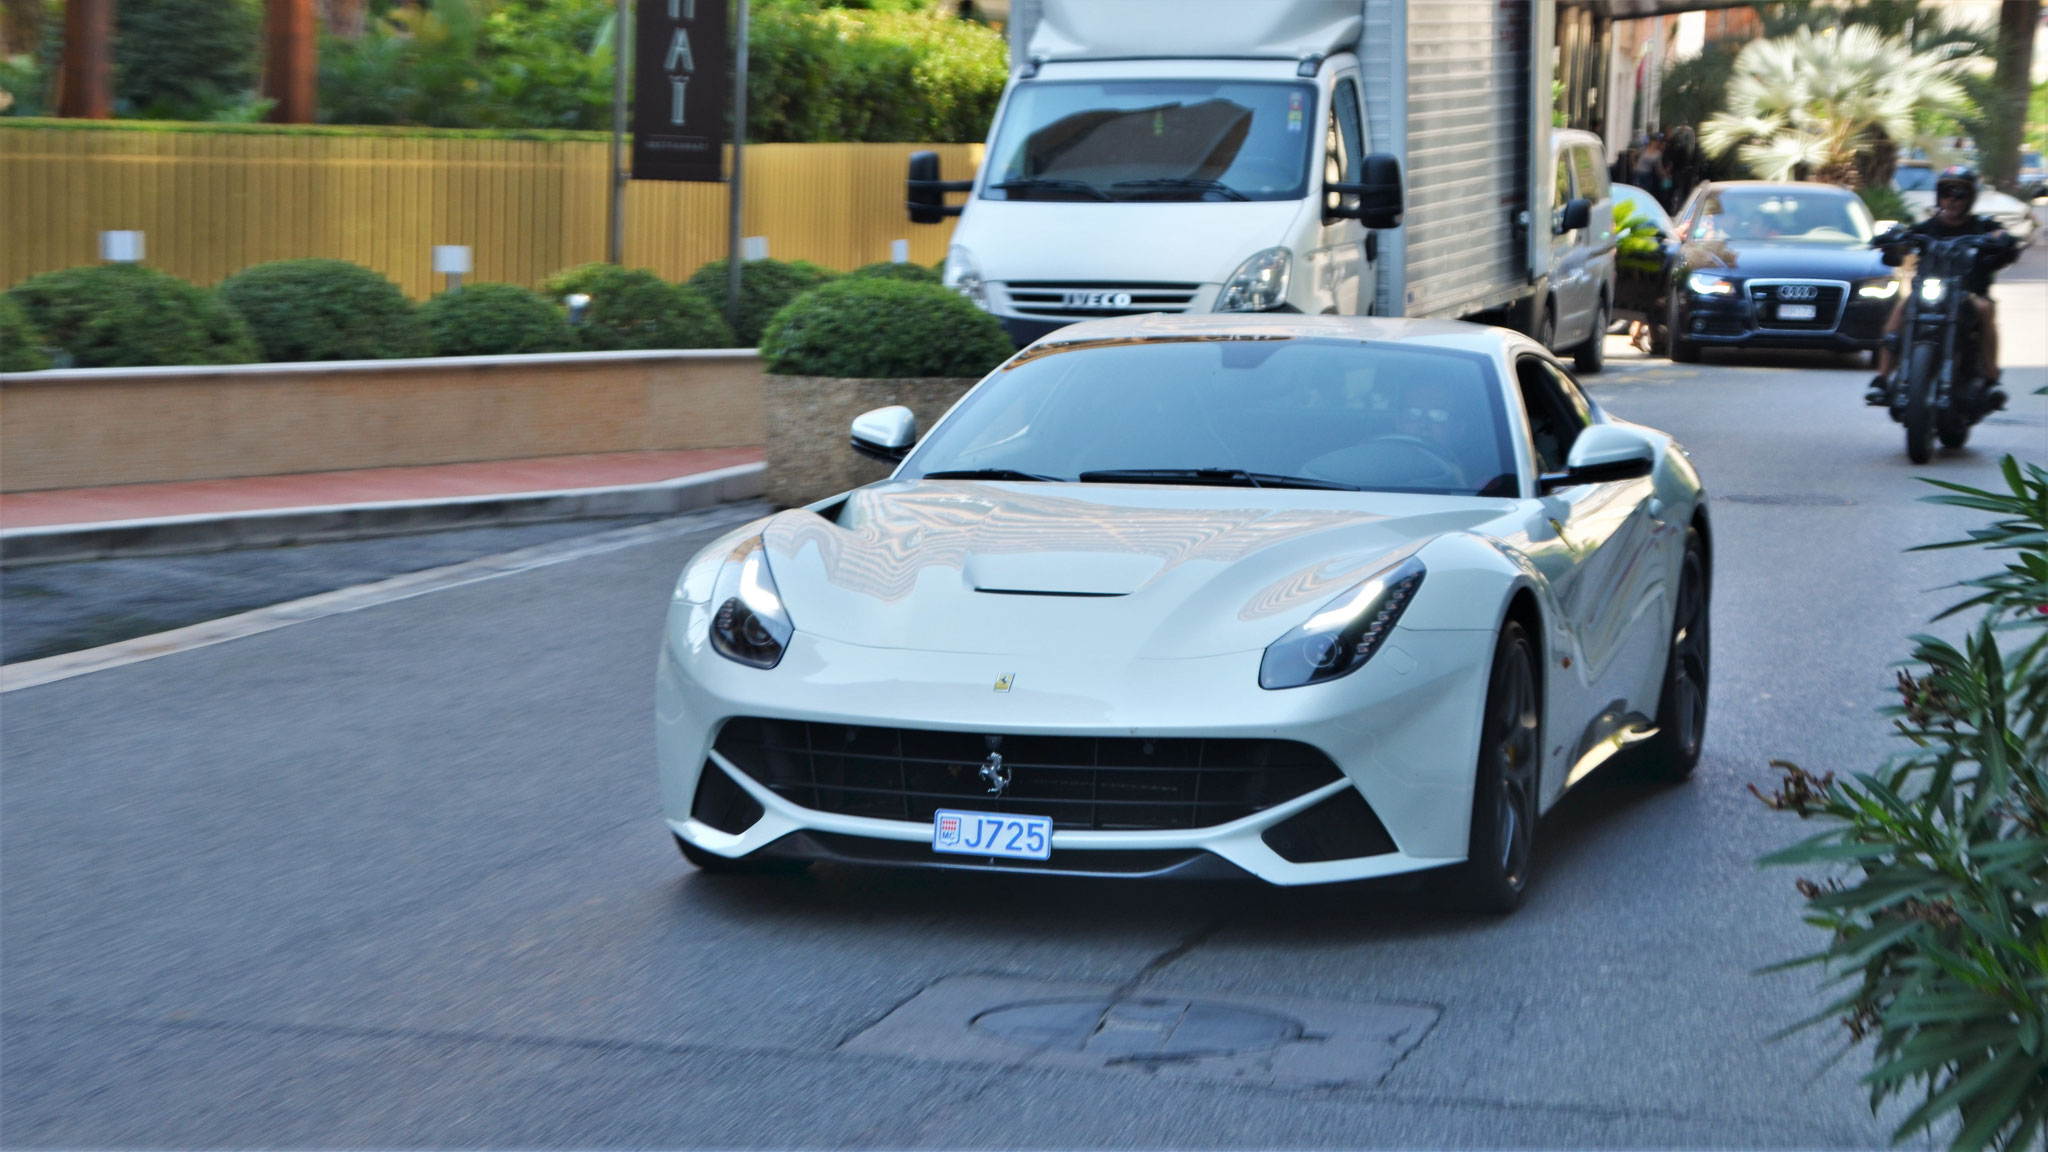 Ferrari F12 Berlinetta - J725 (MC)